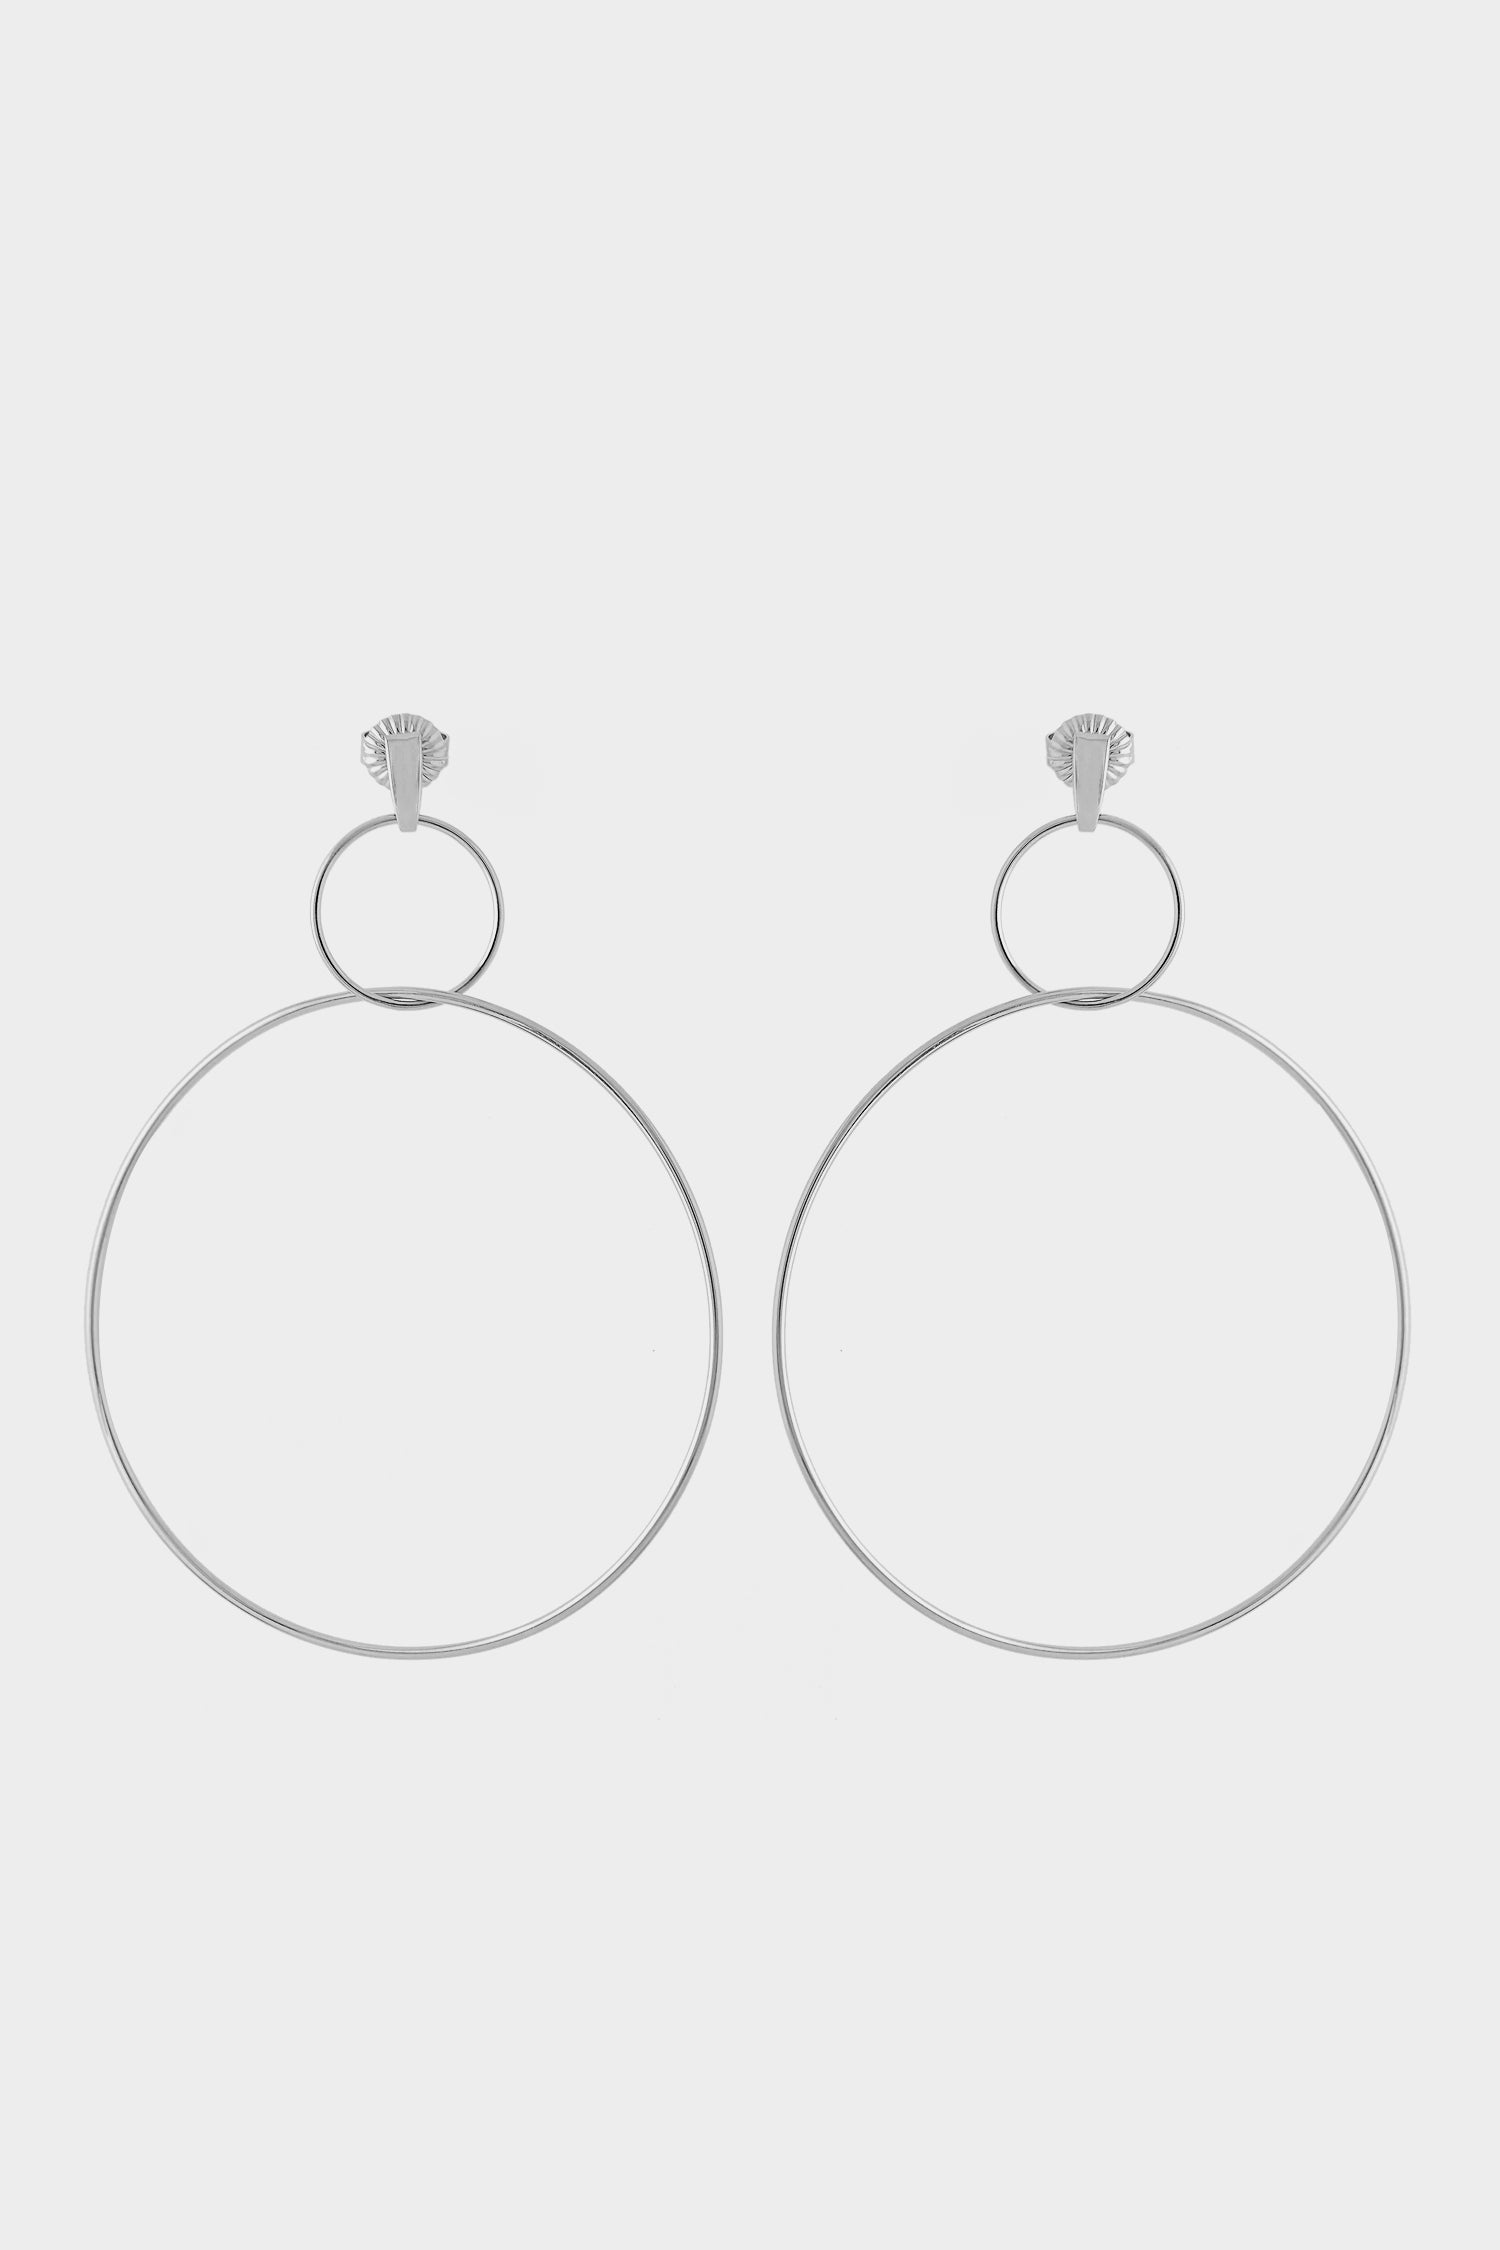 earrings grams p sterling width silver square hoop length tube rhodium weight plated